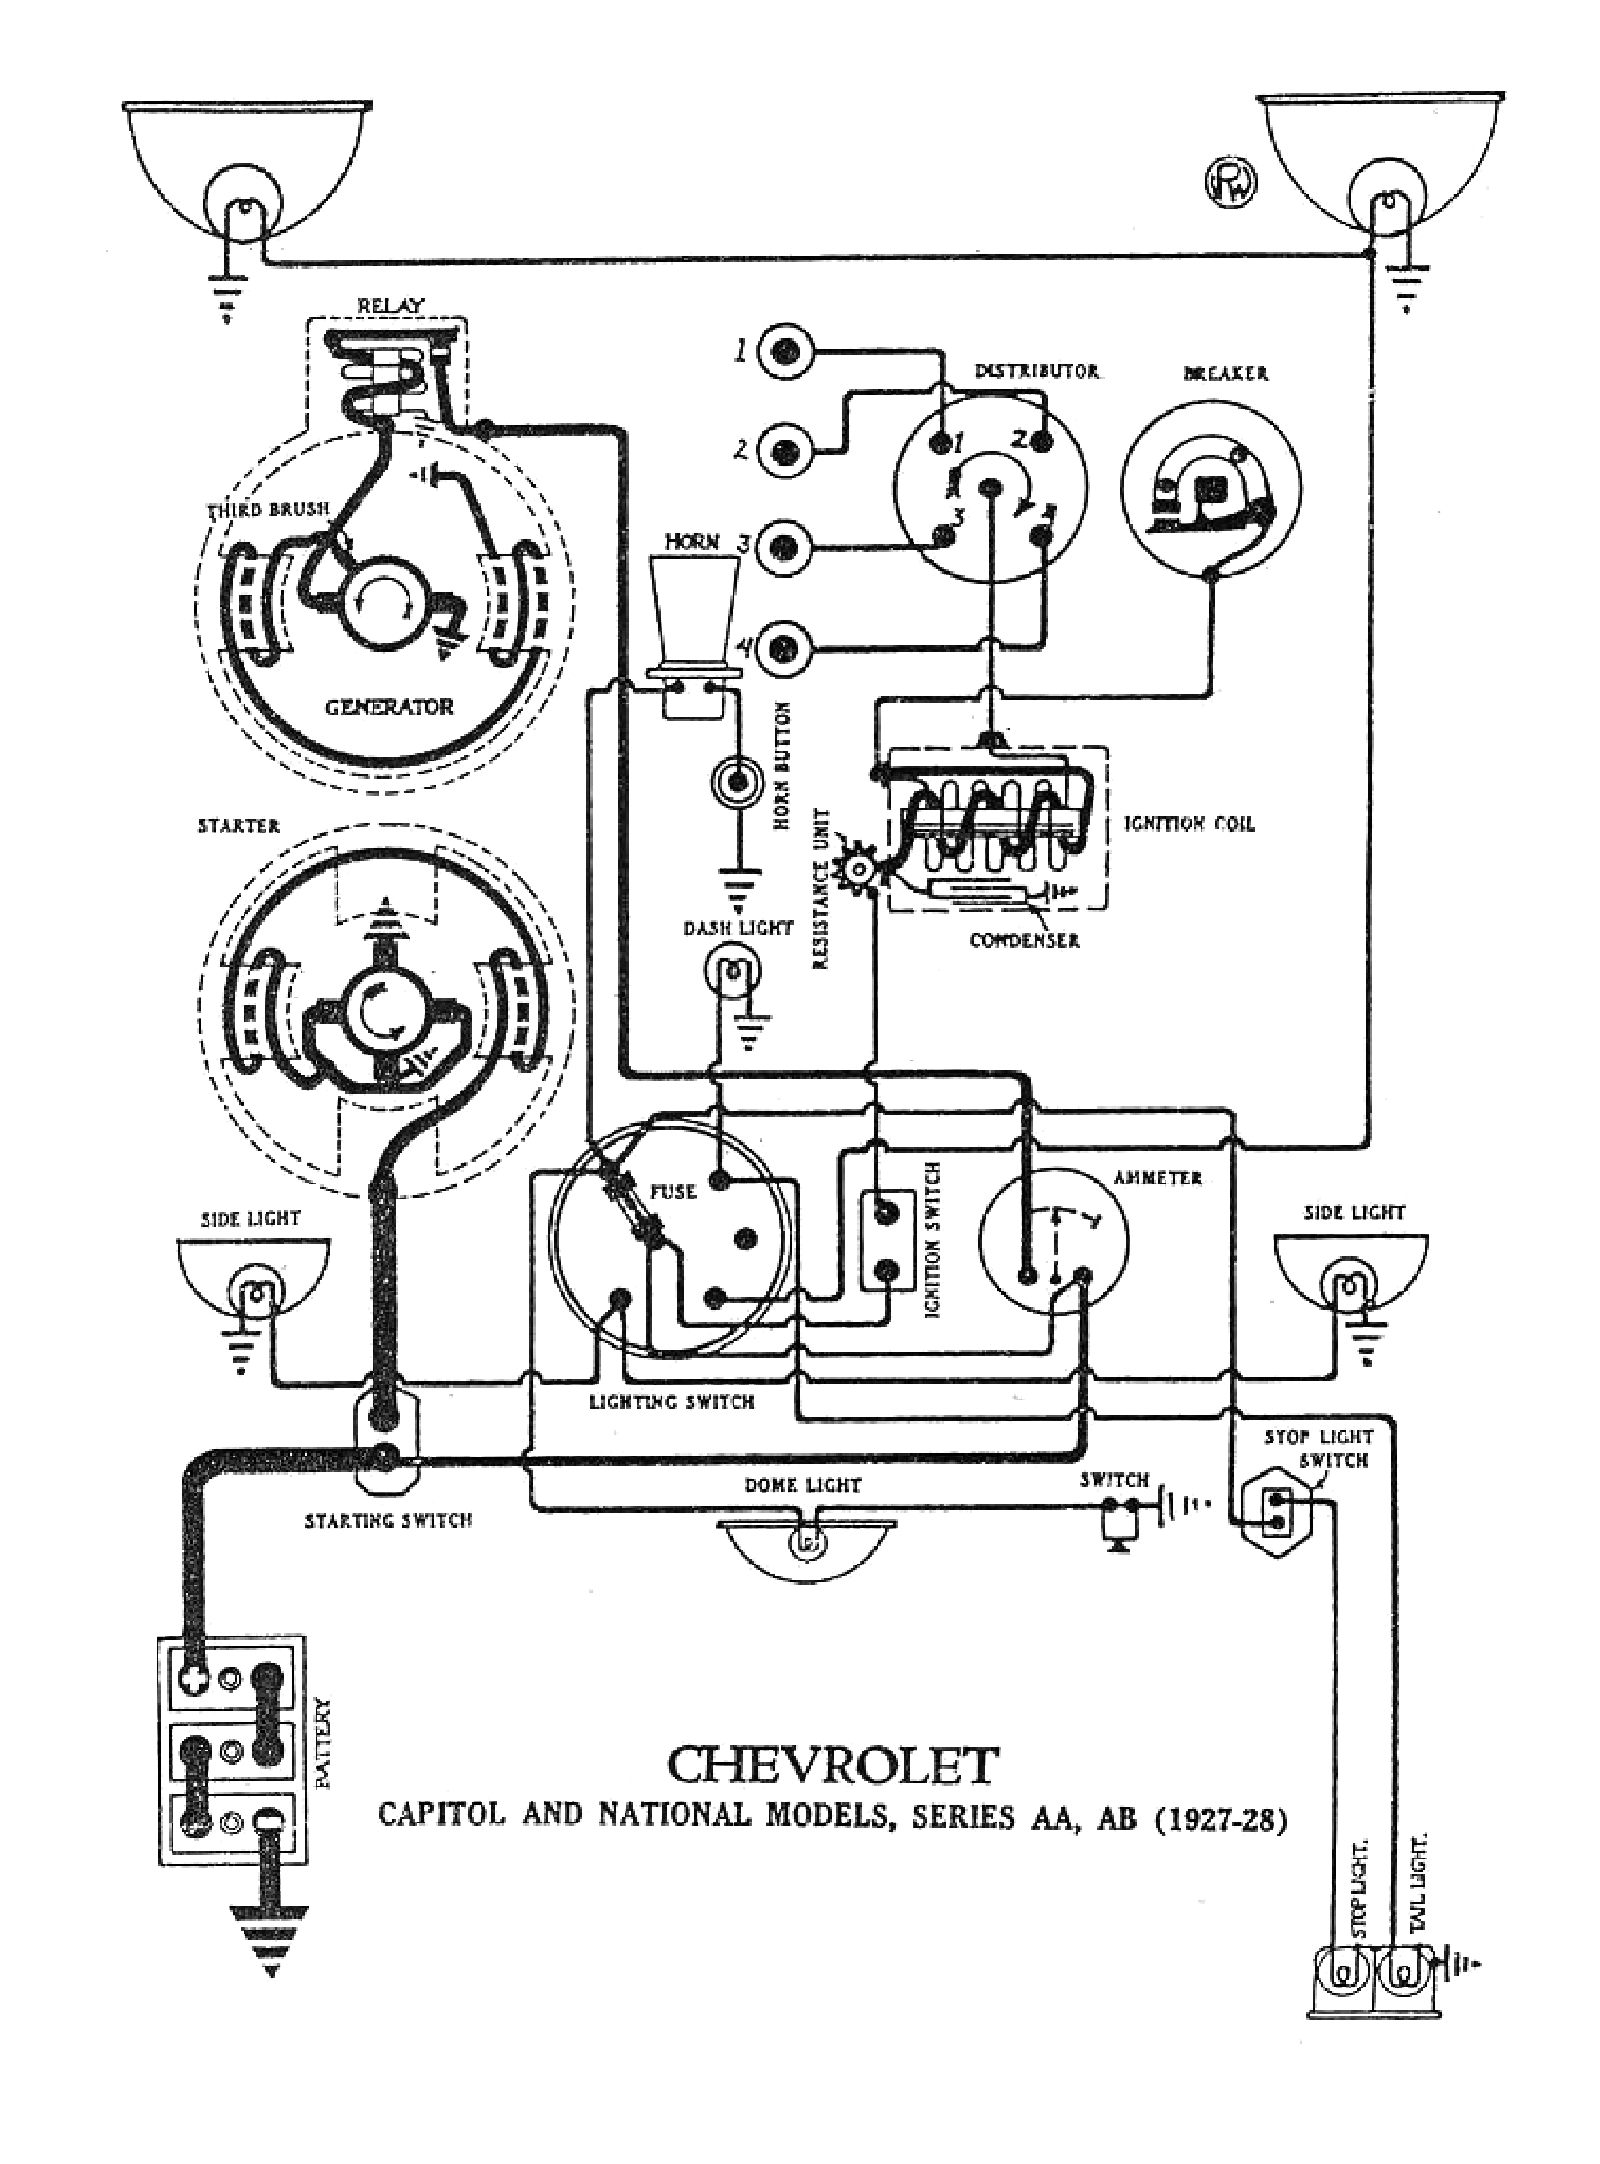 2728wiring chevy wiring diagrams 1927 ford model t wiring diagram at mifinder.co